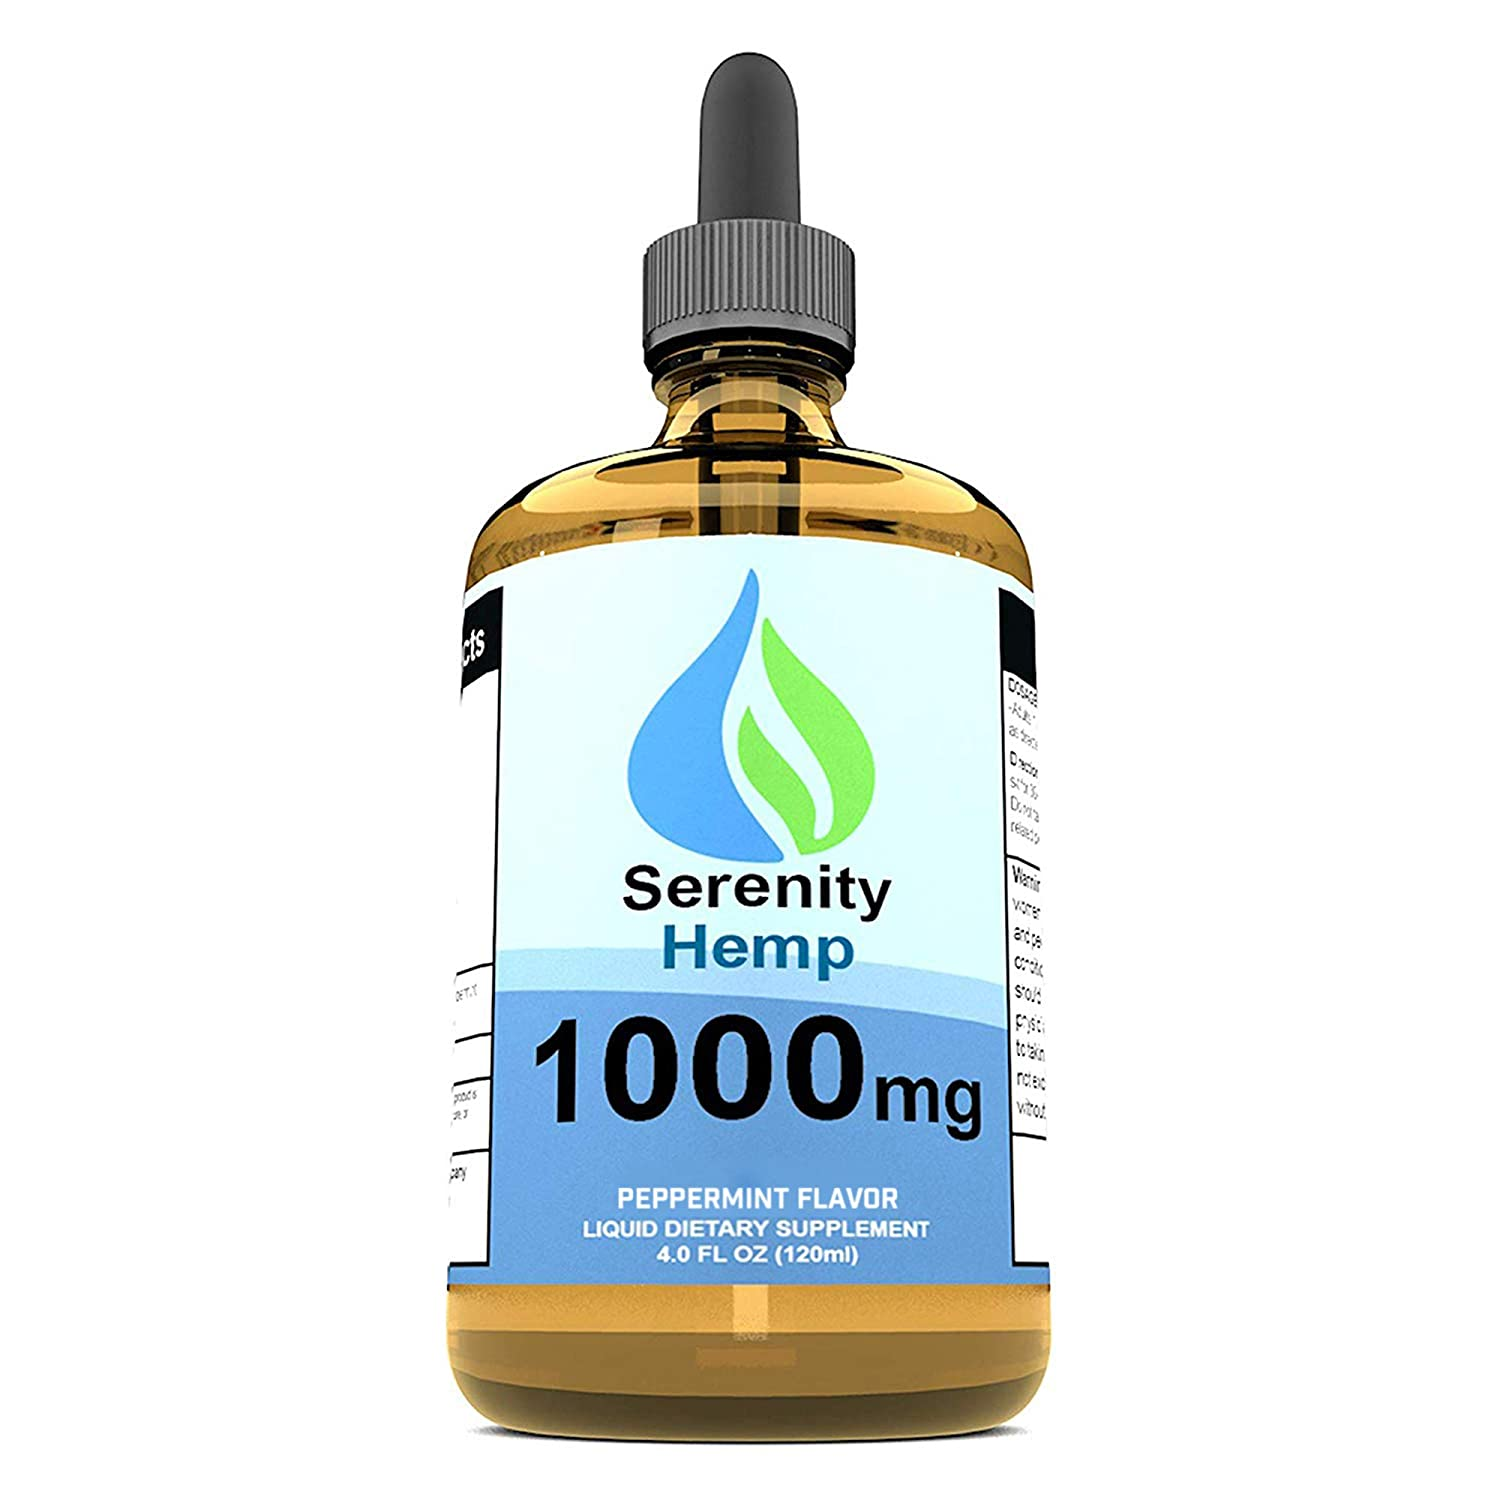 Serenity Hemp Oil - 4 fl oz 1000 mg (Peppermint) - Relief for Stress, Inflammation, Pain, Sleep, Anxiety, Depression, Nausea - Rich in Vitamin E, Vitamin B, Omega 3,6,9 and More!